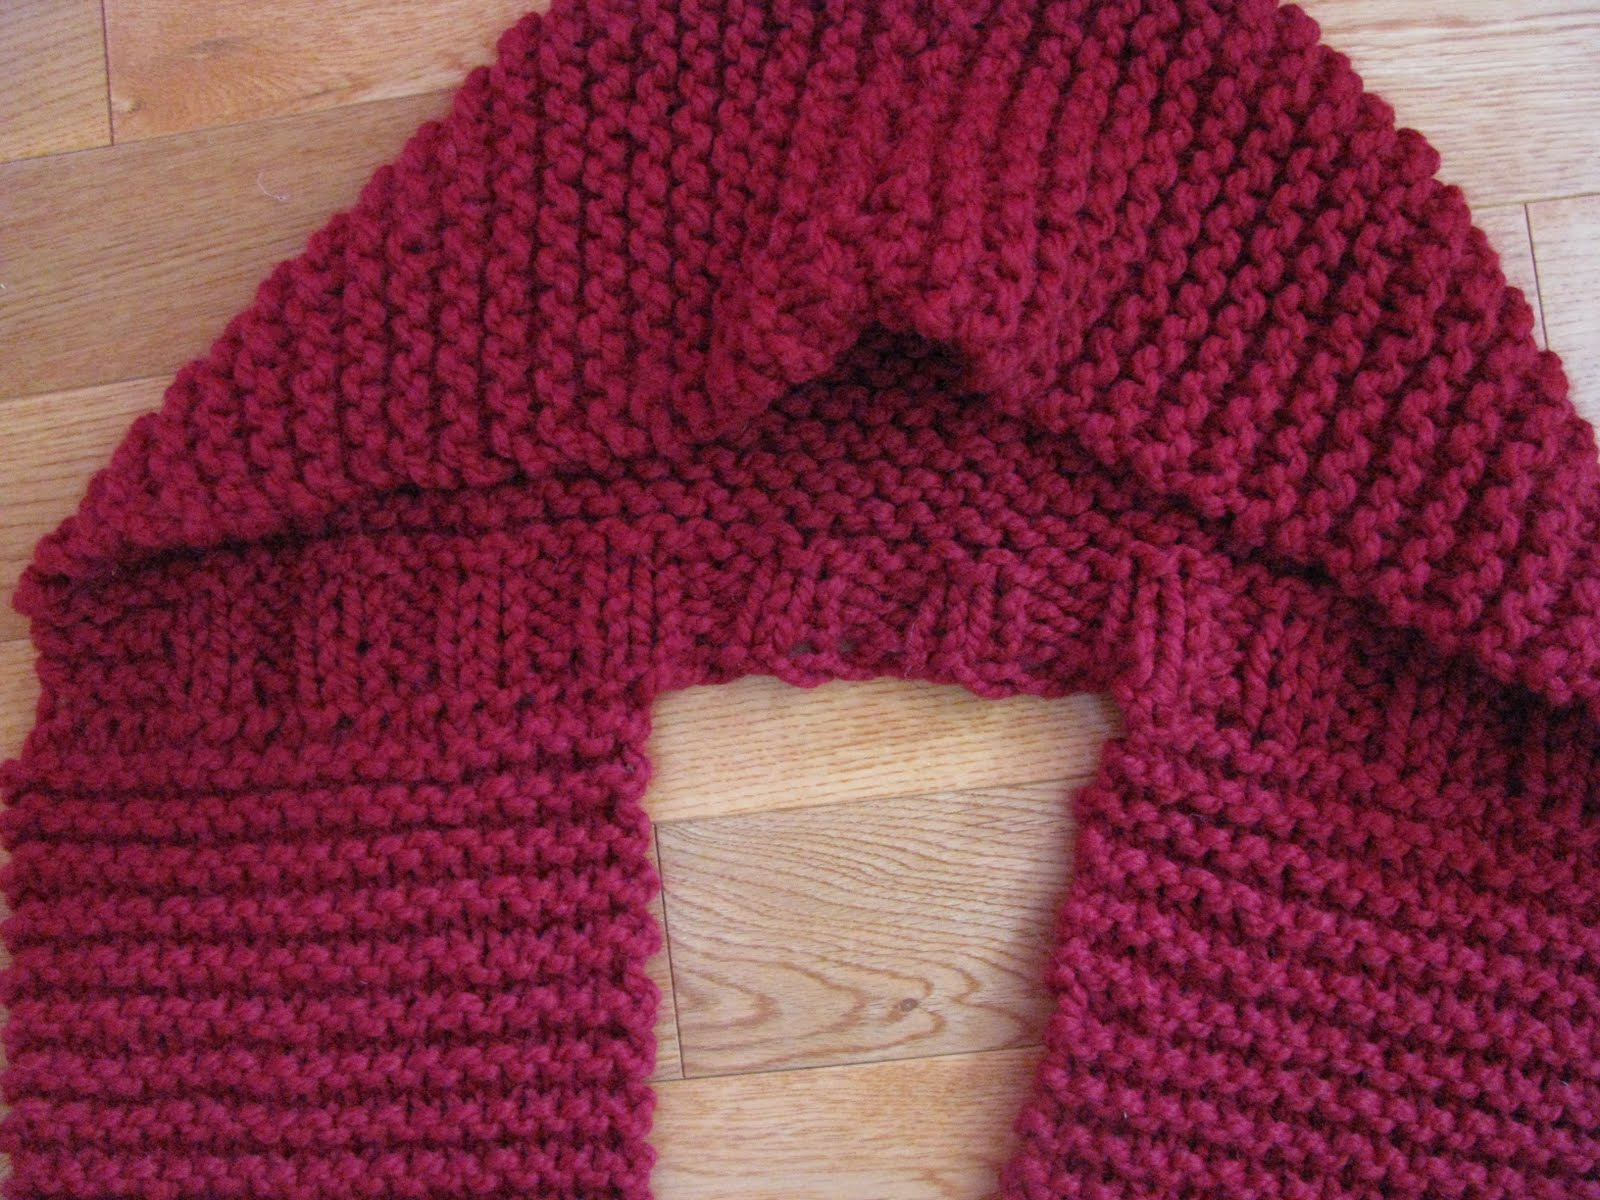 Hooded Infinity Scarf Knitting Pattern : Chris Knits in Niagara: Infinity Hooded Cowl